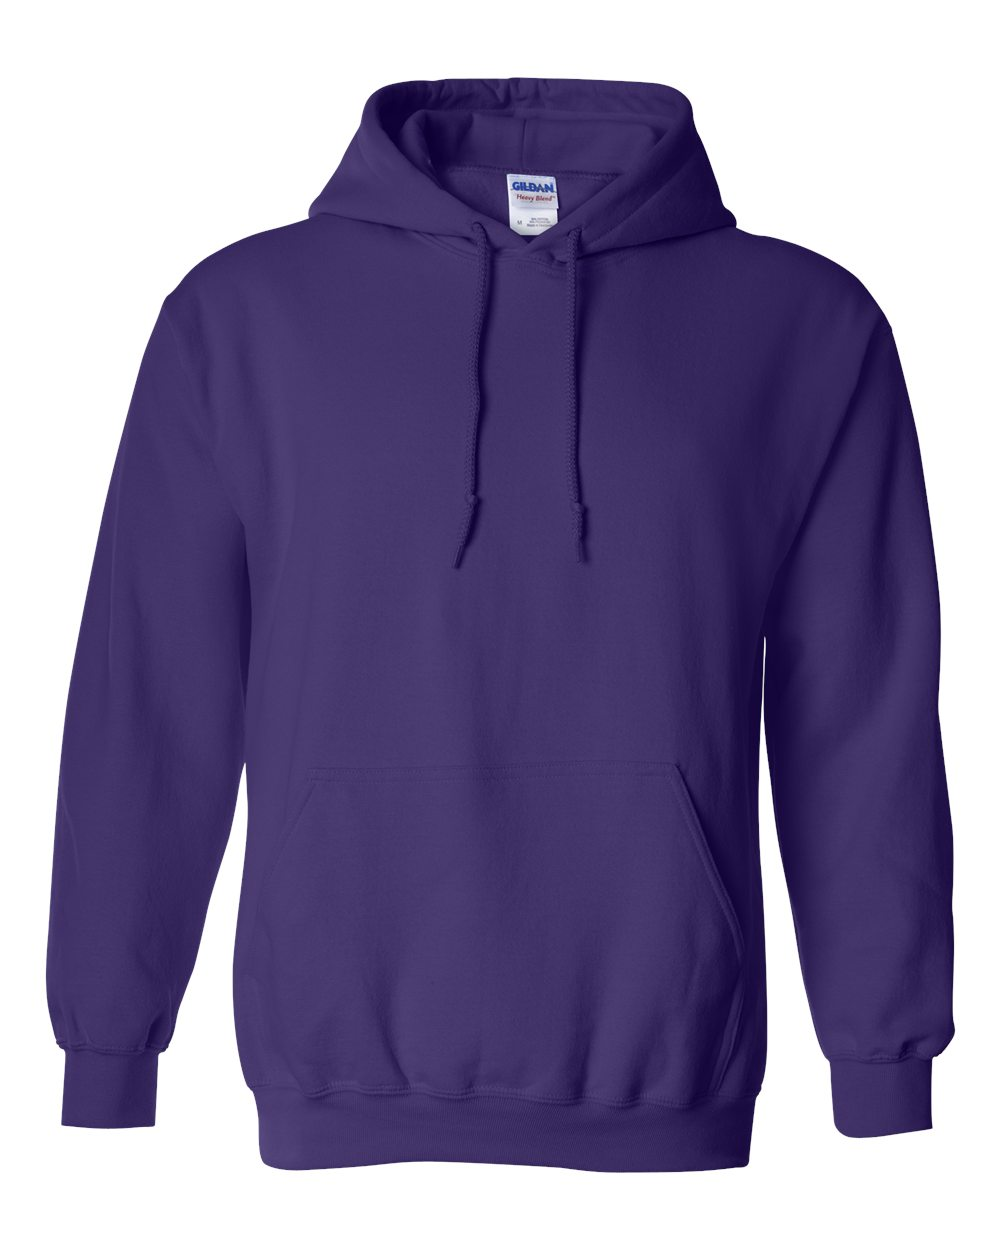 Gildan_18500_Purple_Front_High.jpg